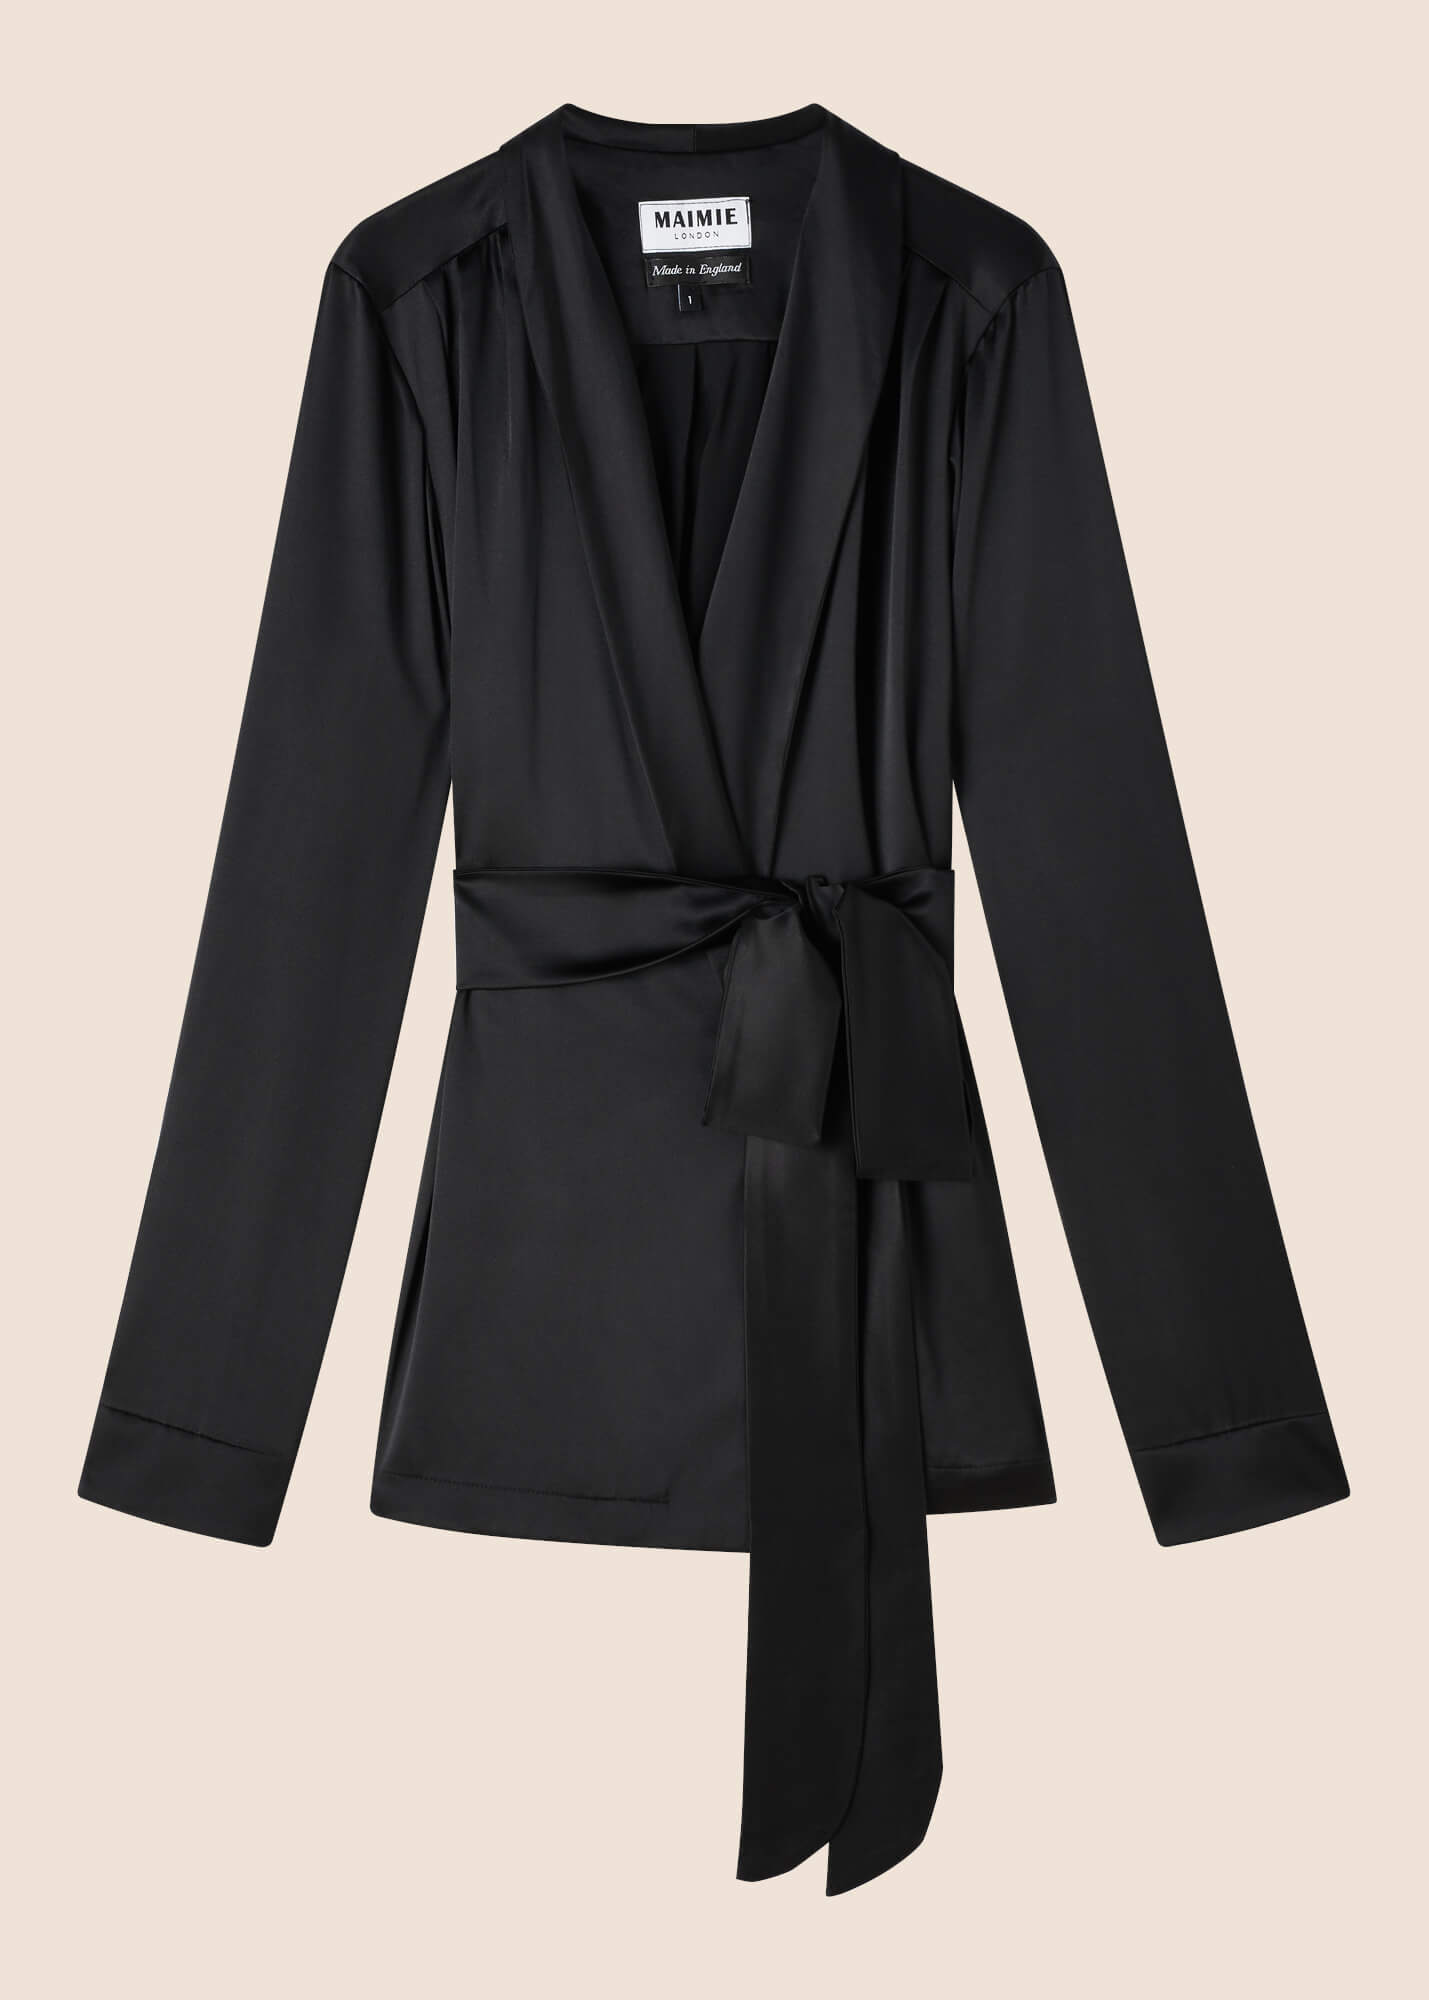 Roxy Ebony Silk Jacket